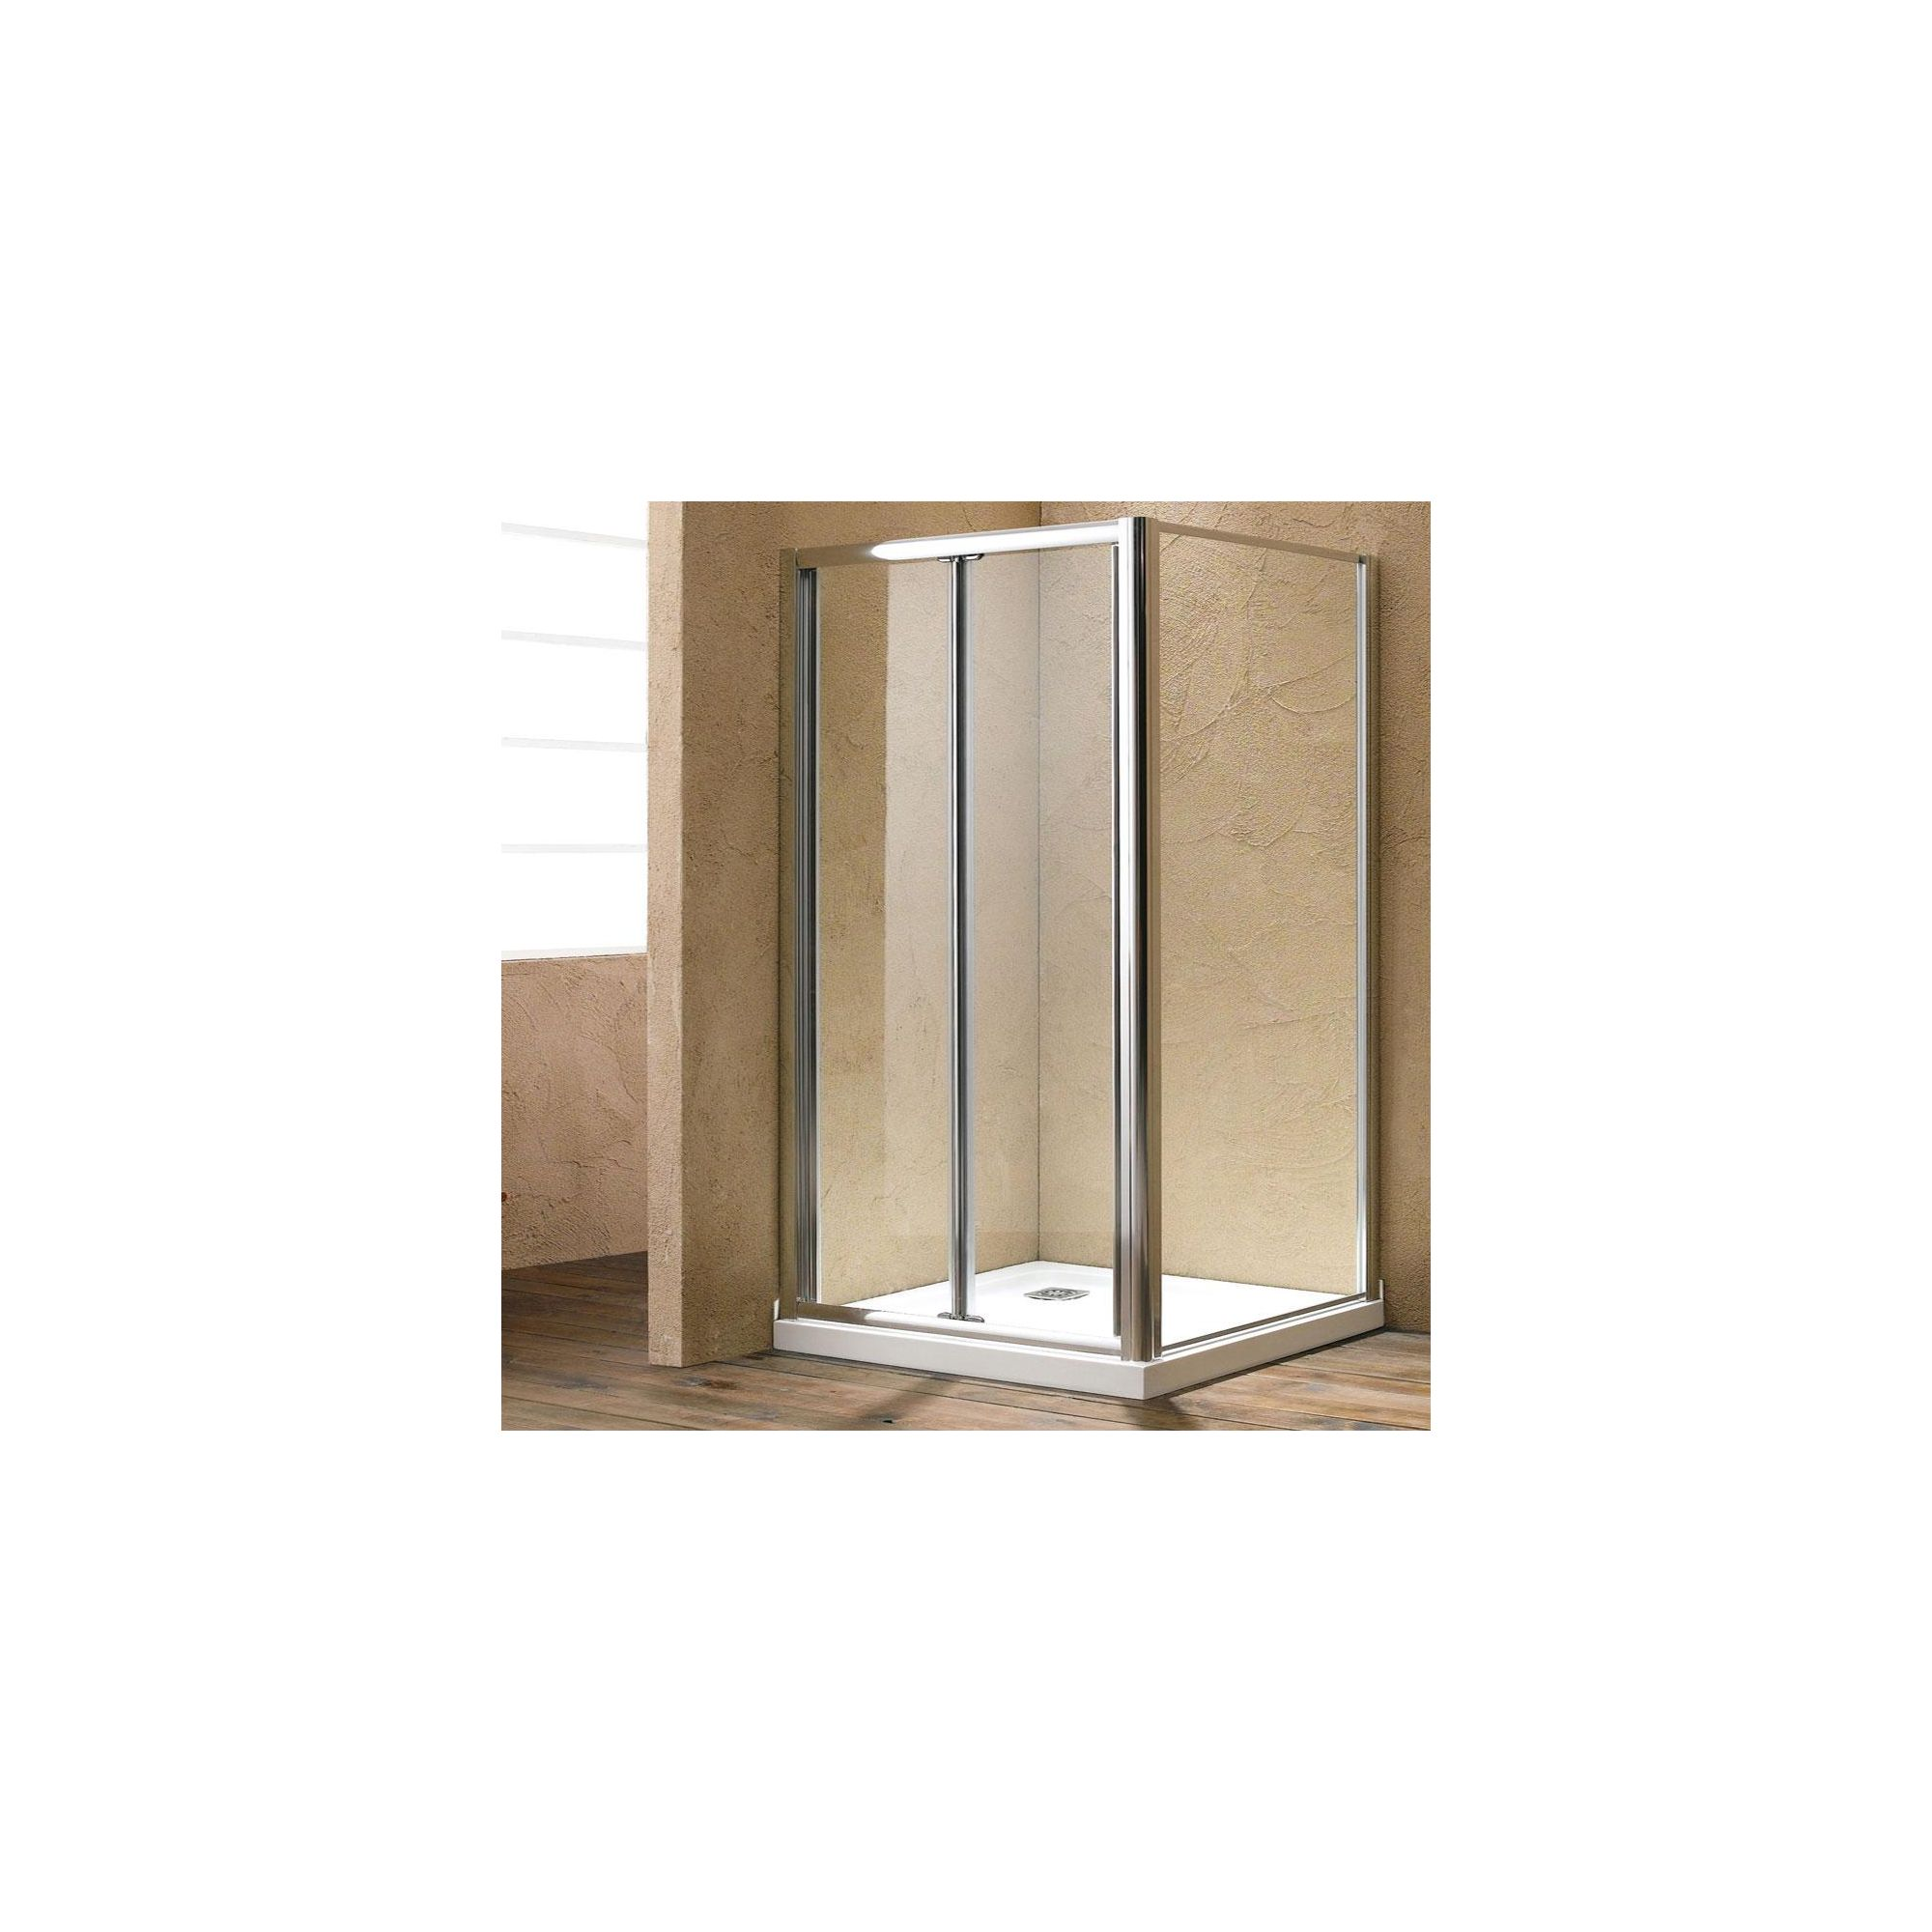 Duchy Style Twin Bi-Fold Door Shower Enclosure, 1200mm x 900mm, 6mm Glass, Low Profile Tray at Tesco Direct